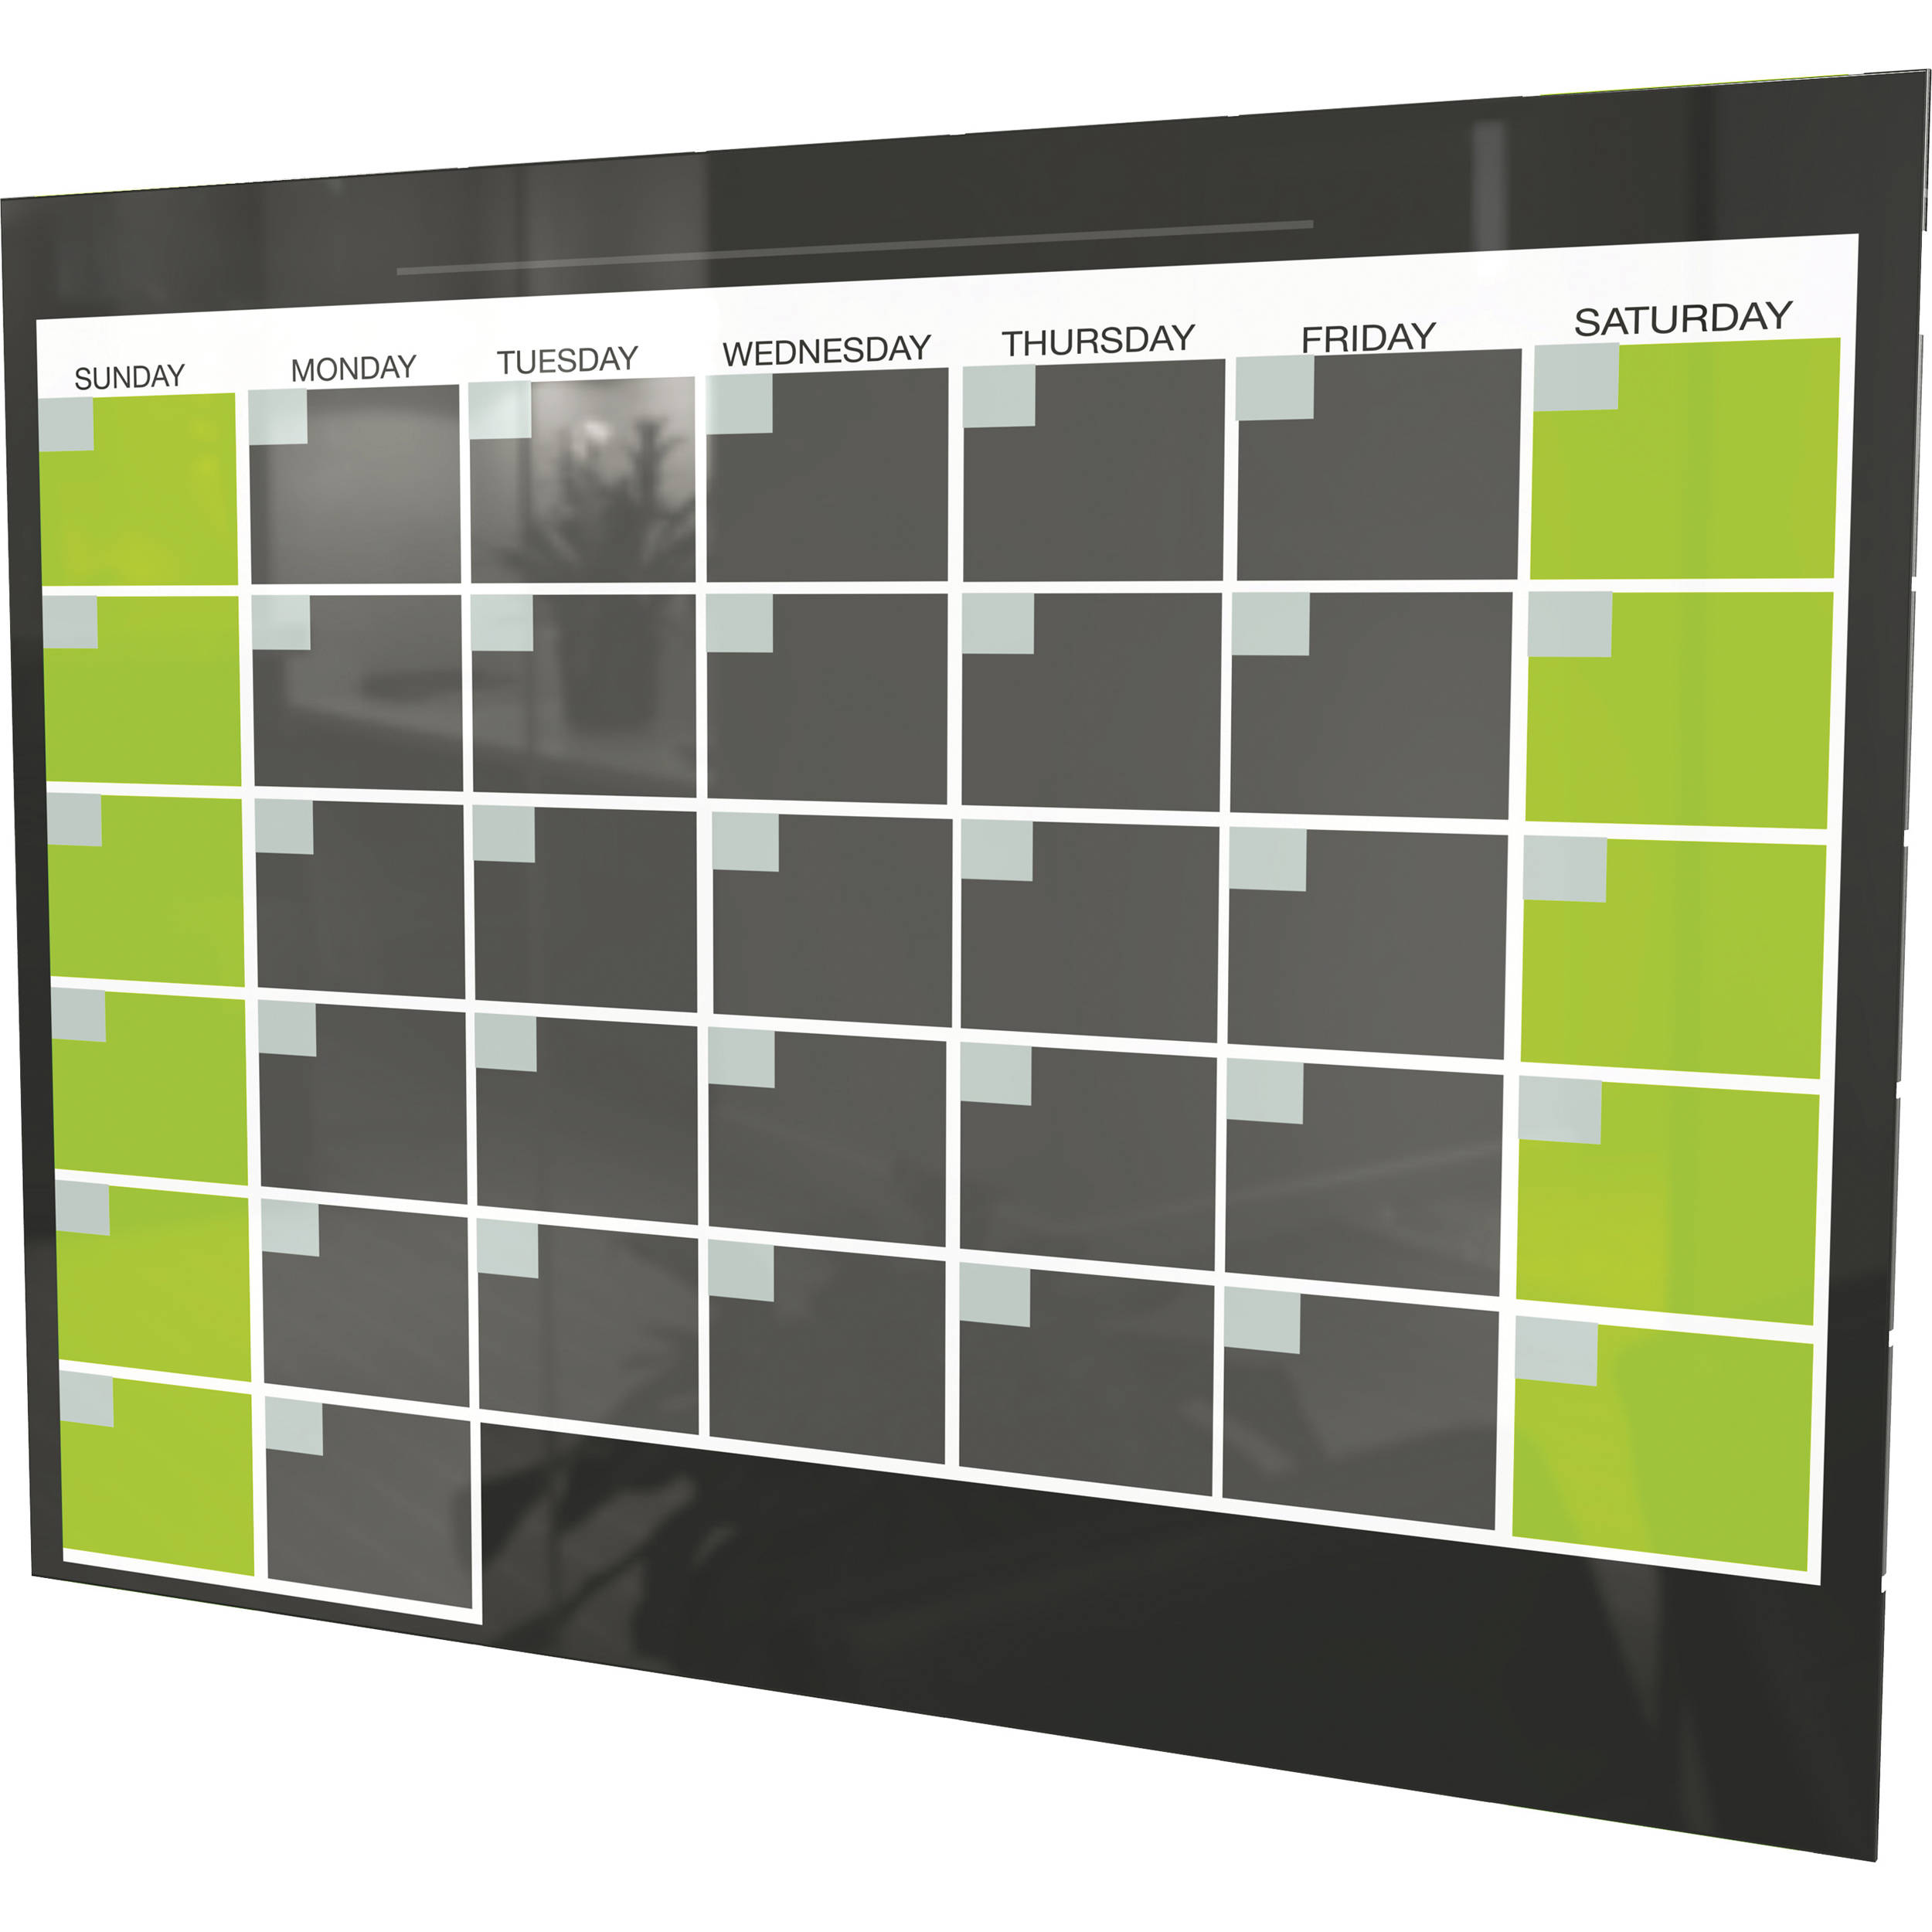 Balt Black Magnetic Glass Dry Erase Monthly Calendar 84110 B H